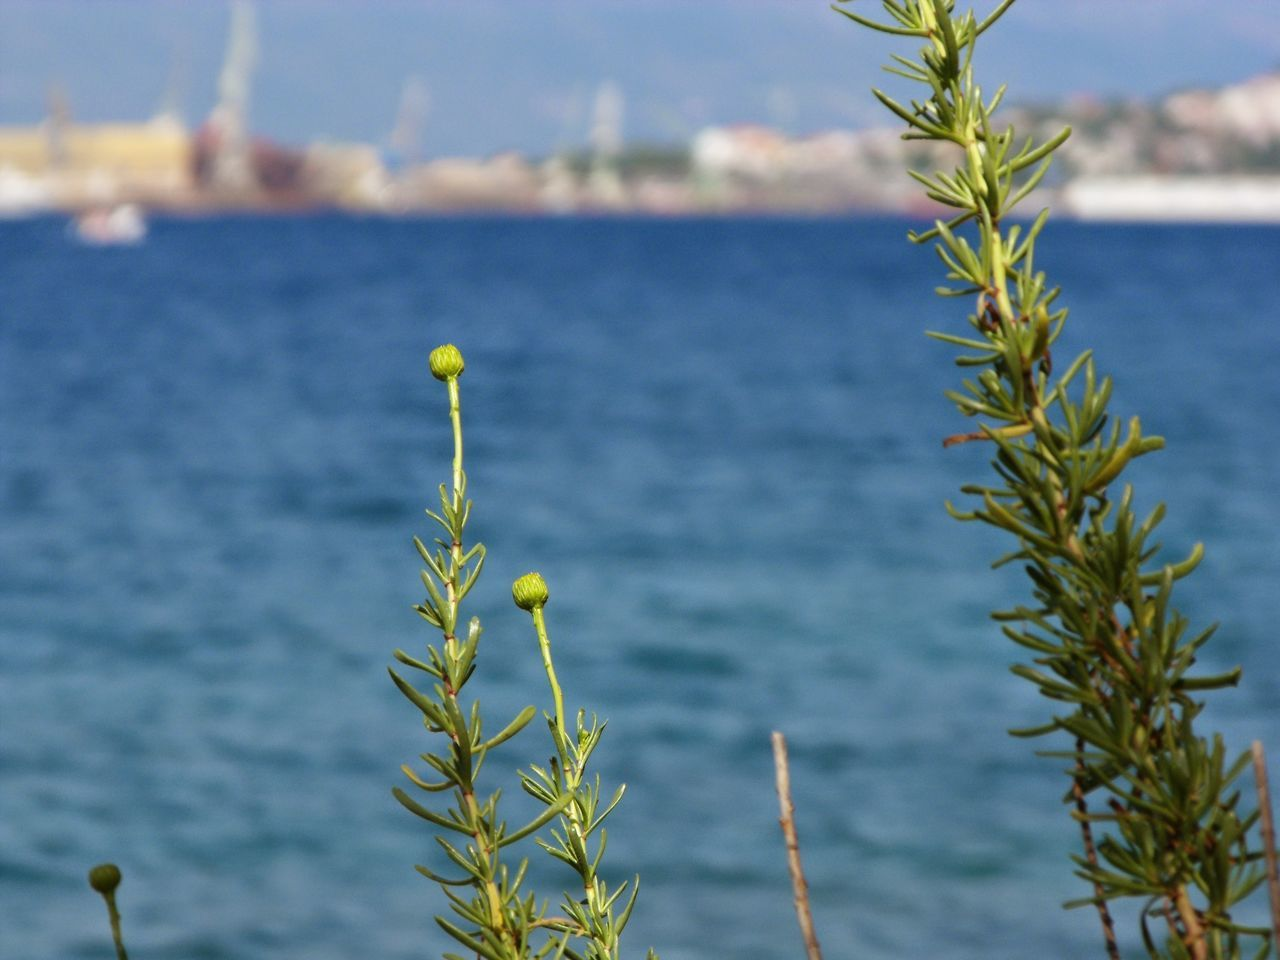 plant, growth, nature, beauty in nature, focus on foreground, water, no people, tranquility, outdoors, leaf, day, close-up, sea, scenics, flower, freshness